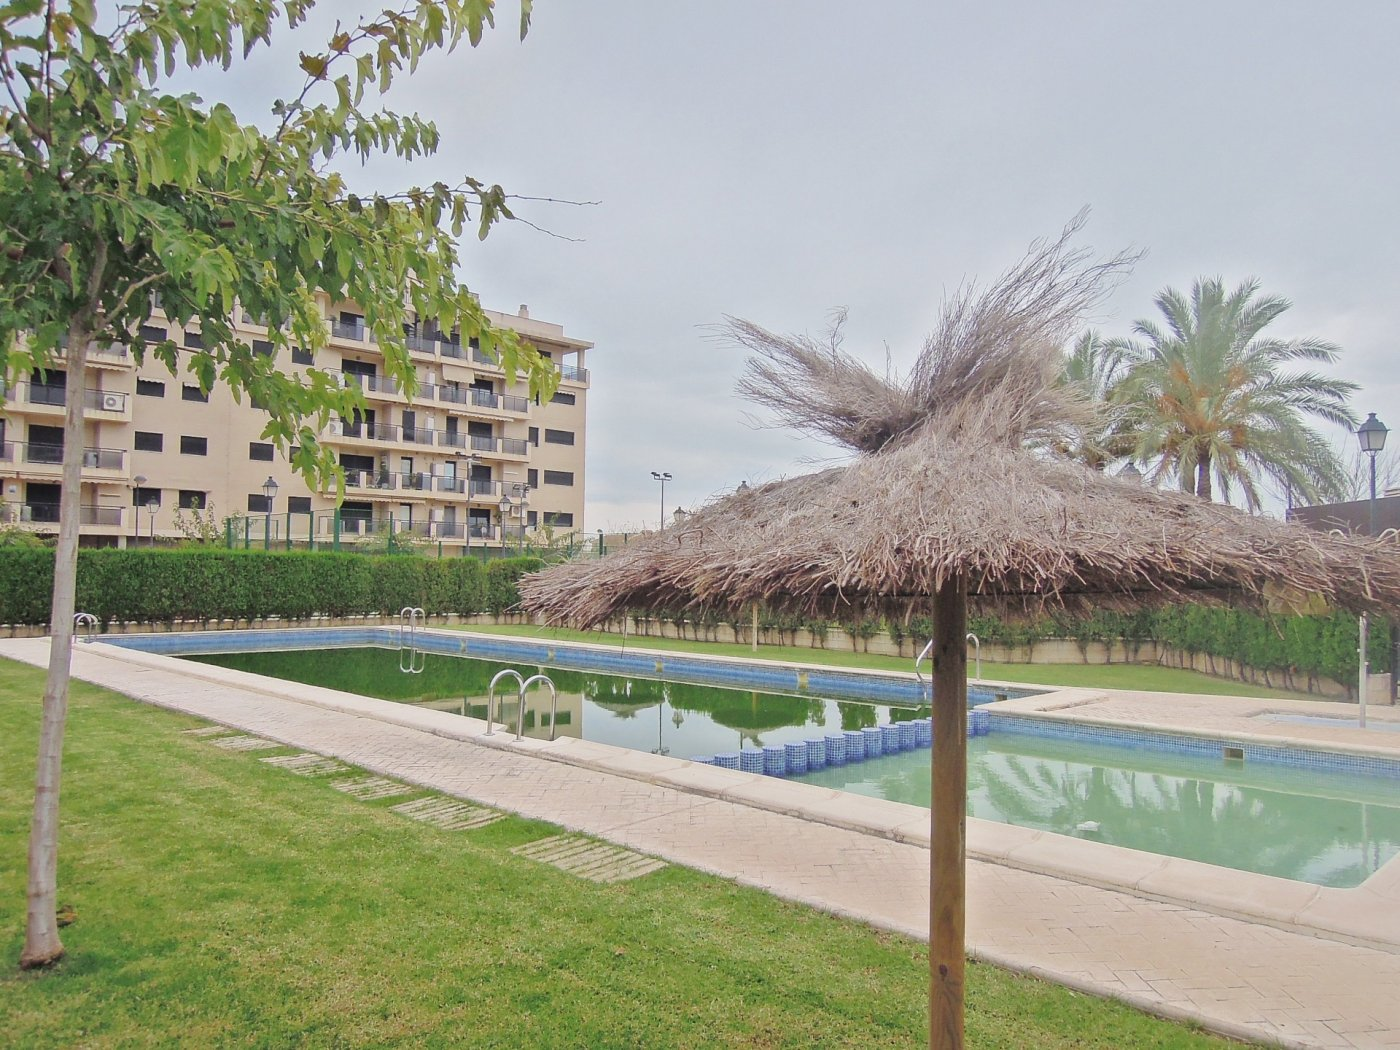 Location Appartement  Puig ,playa. Descansar junto al mar